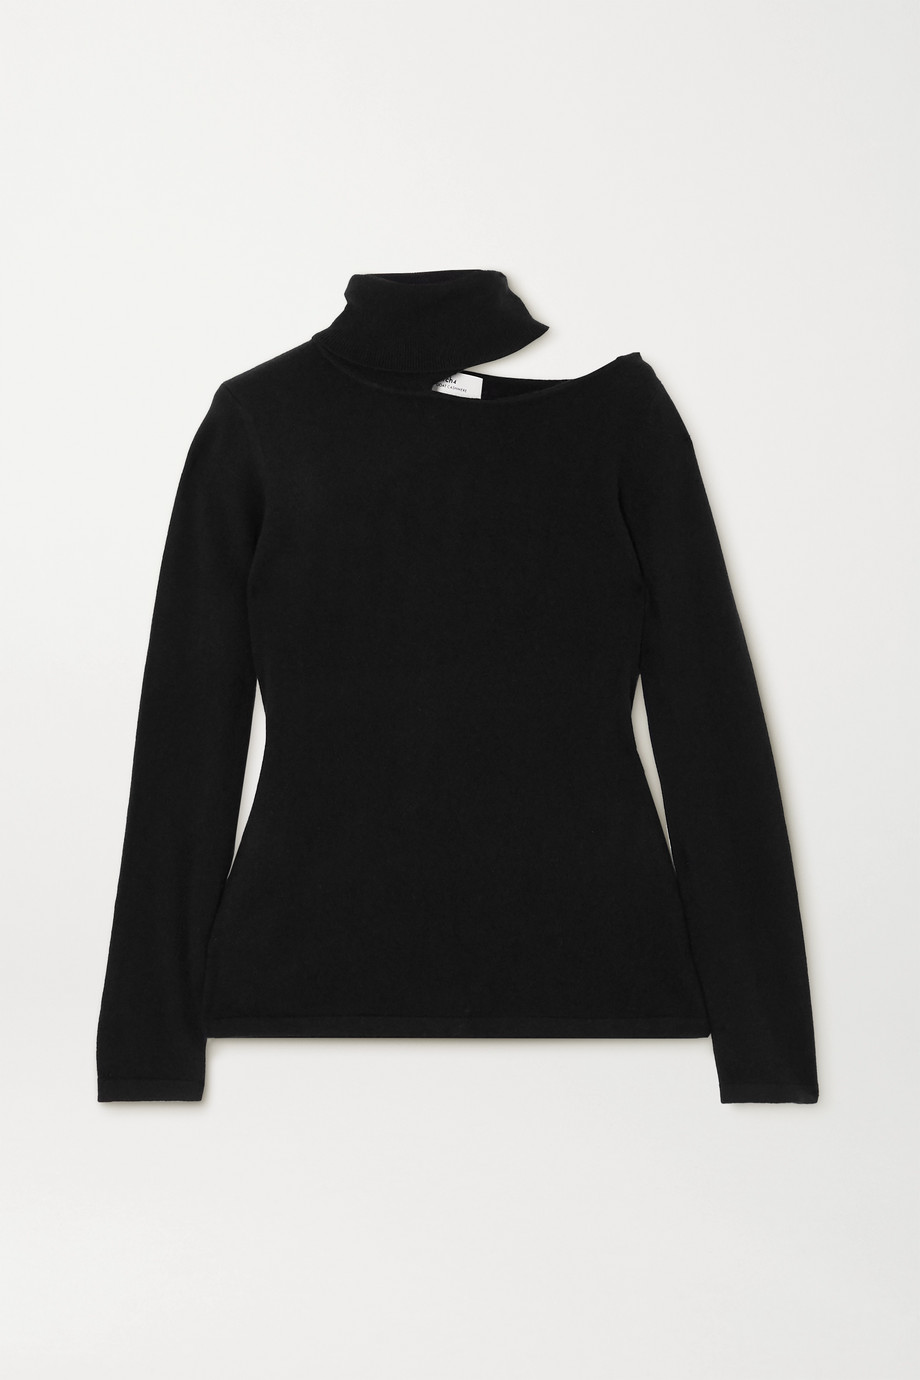 Arch4 Cutout cashmere turtleneck sweater